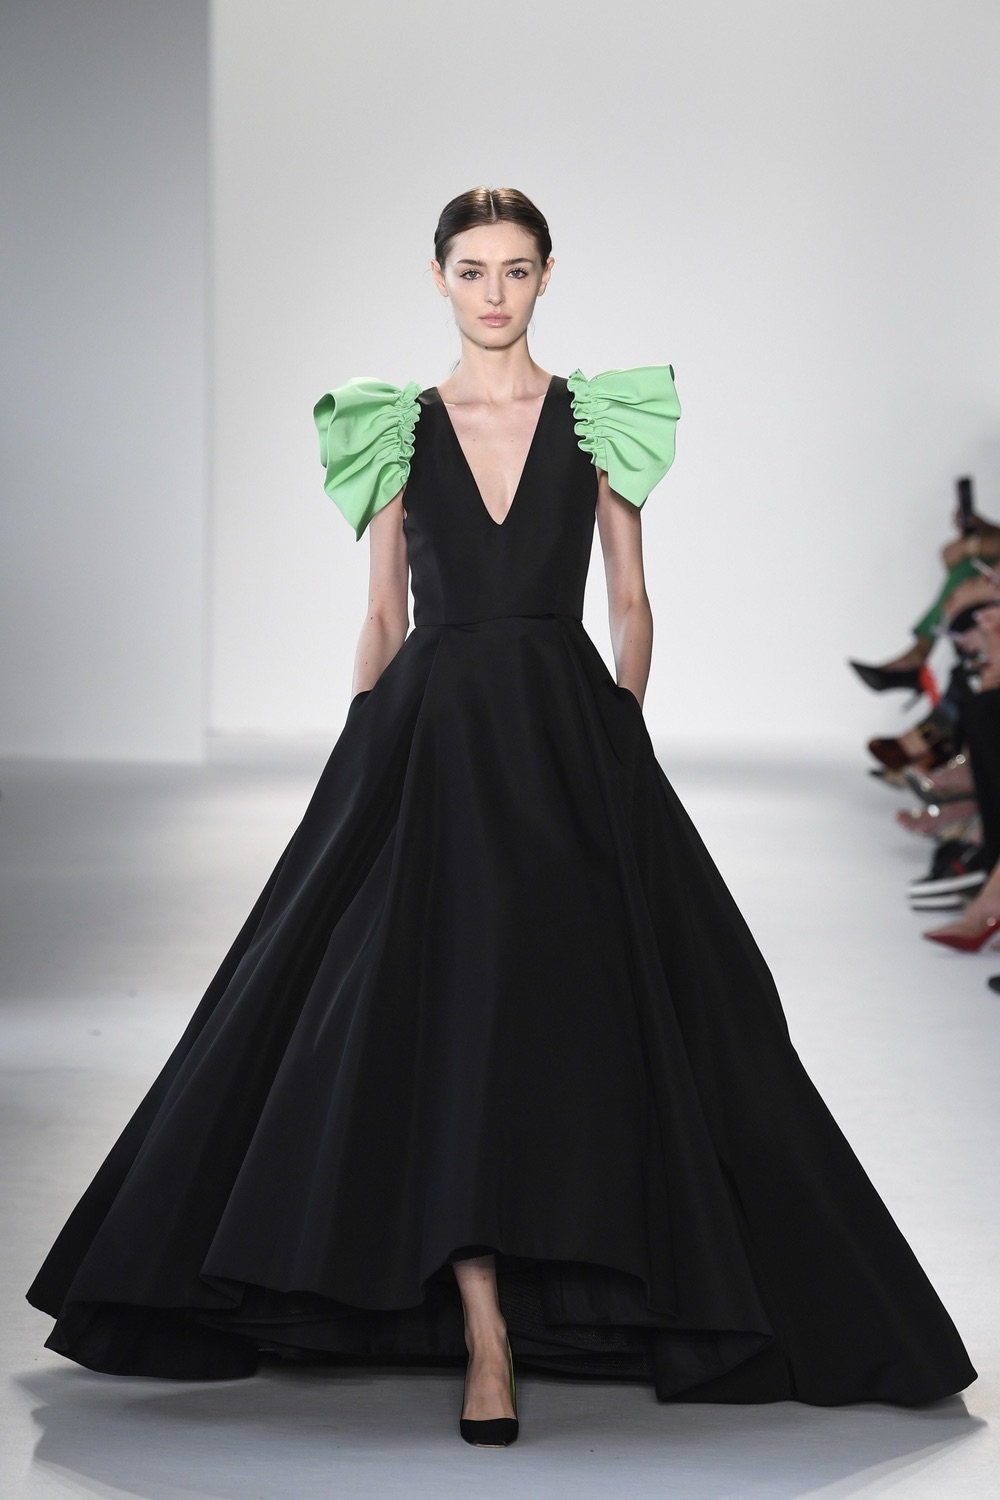 Christian Siriano New York Fashion Week SS18